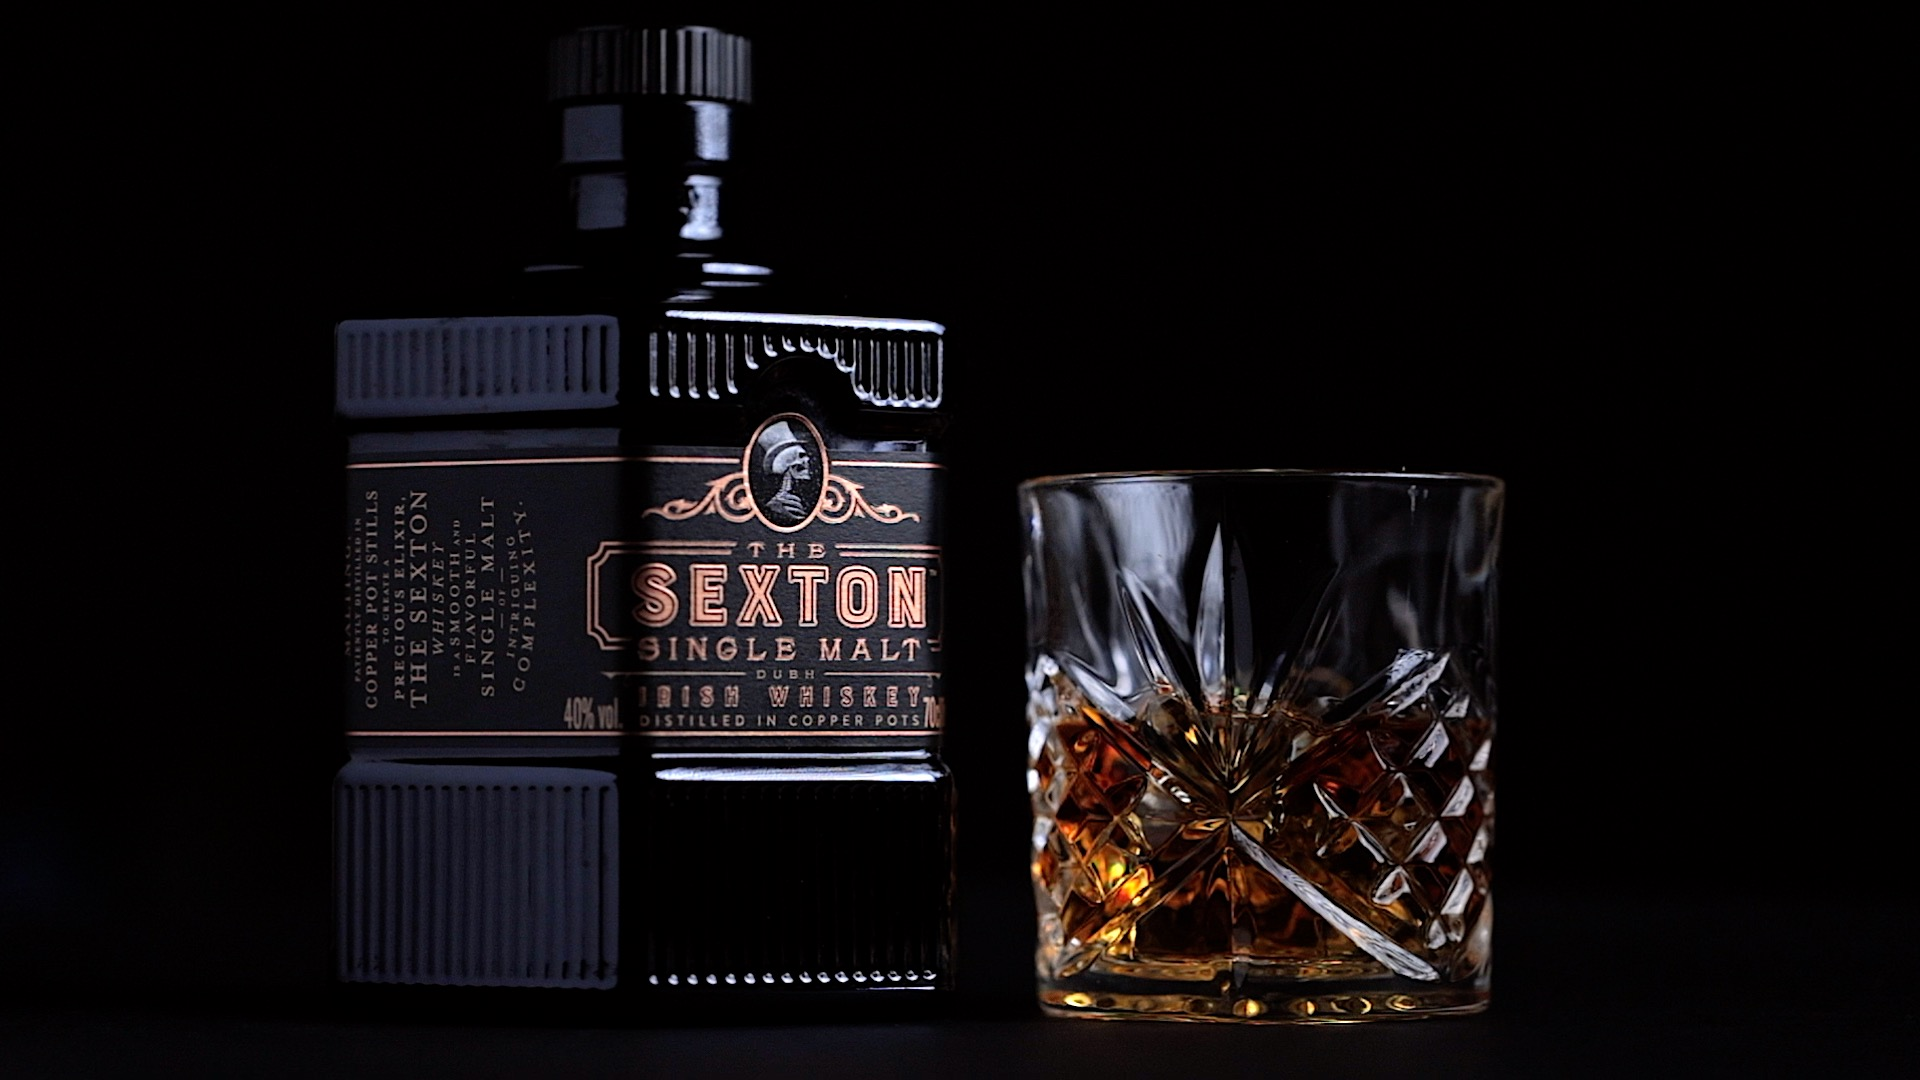 Video production – The Sexton Single Malt blended with Filmsbyben image